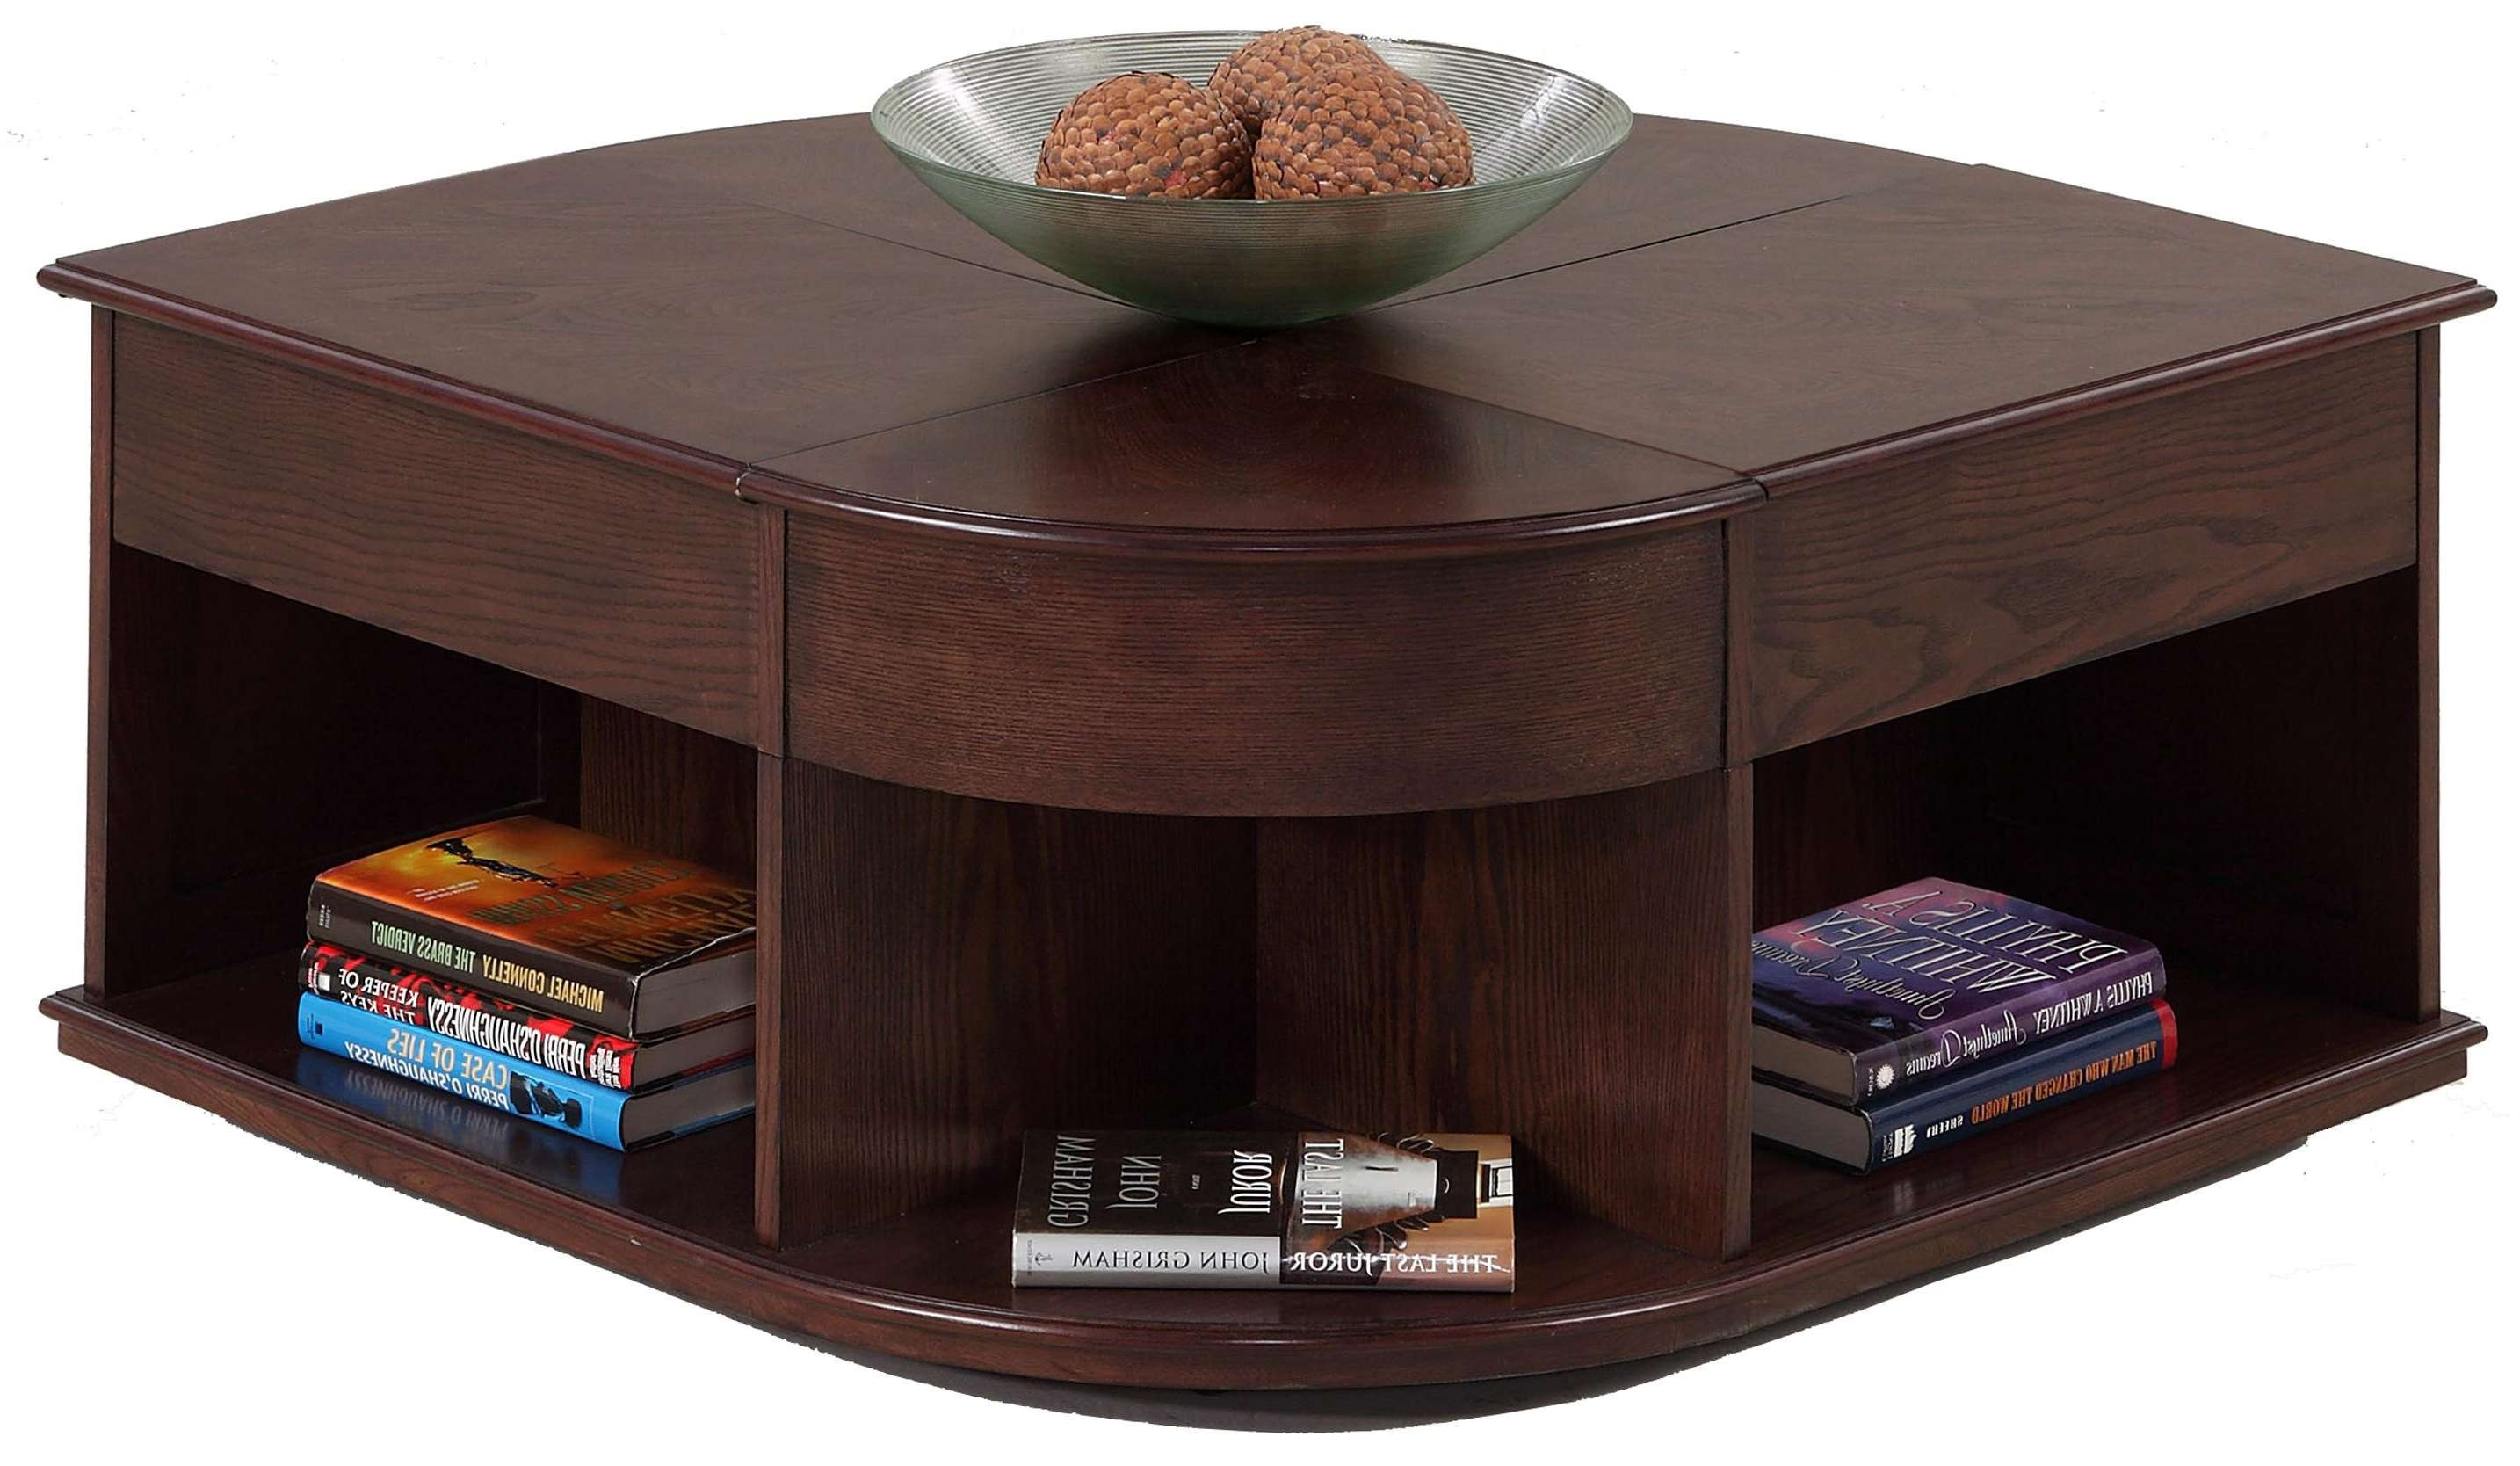 Furniture Corner Coffee Table Ideas High Resolution Wallpaper In 2017 Corner Coffee Tables (View 8 of 20)